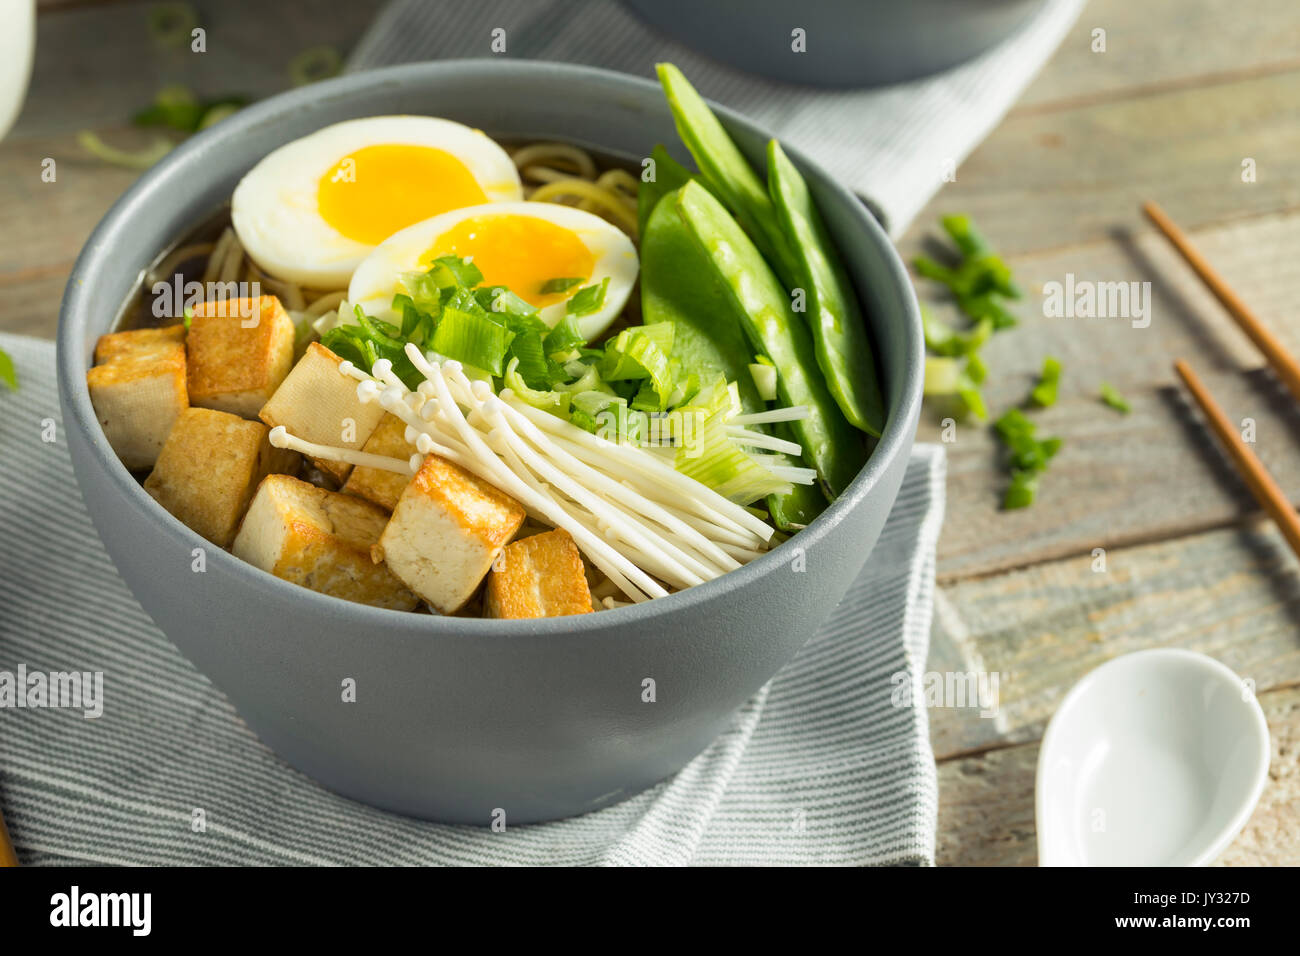 Homemade Japanese Vegan Tofu Ramen Noodles with Egg and Mushrooms Stock Photo